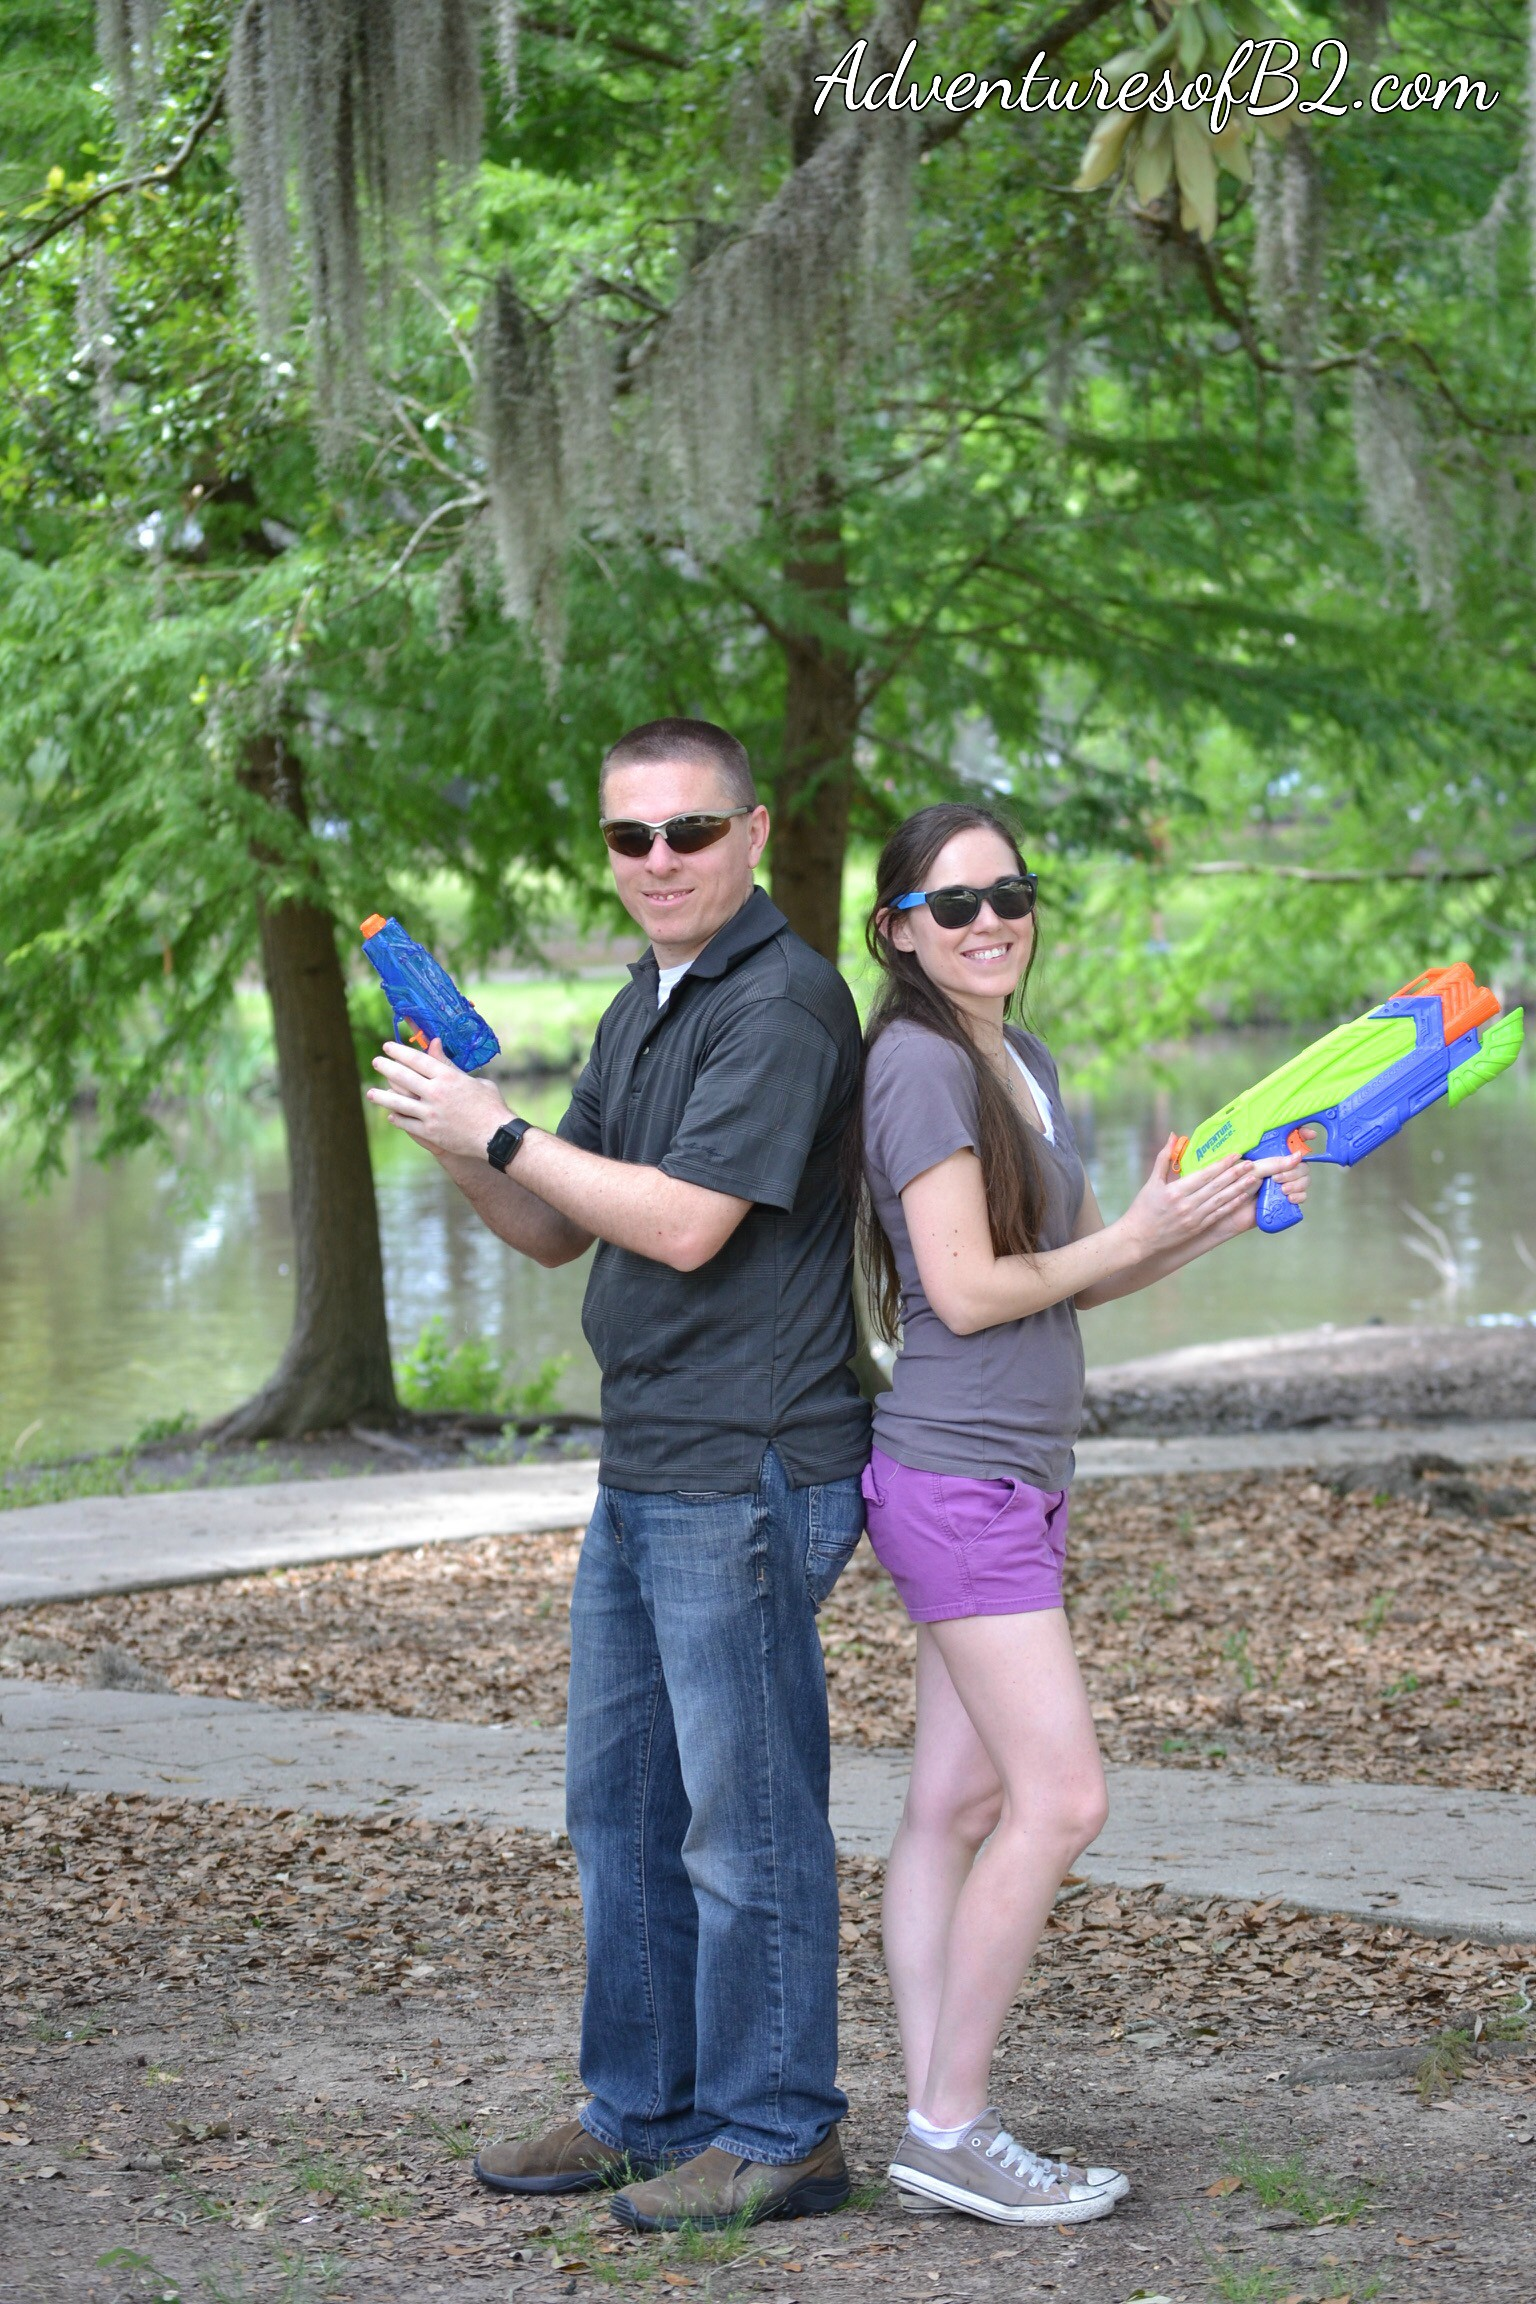 Water Gun Fight Photo Shoot